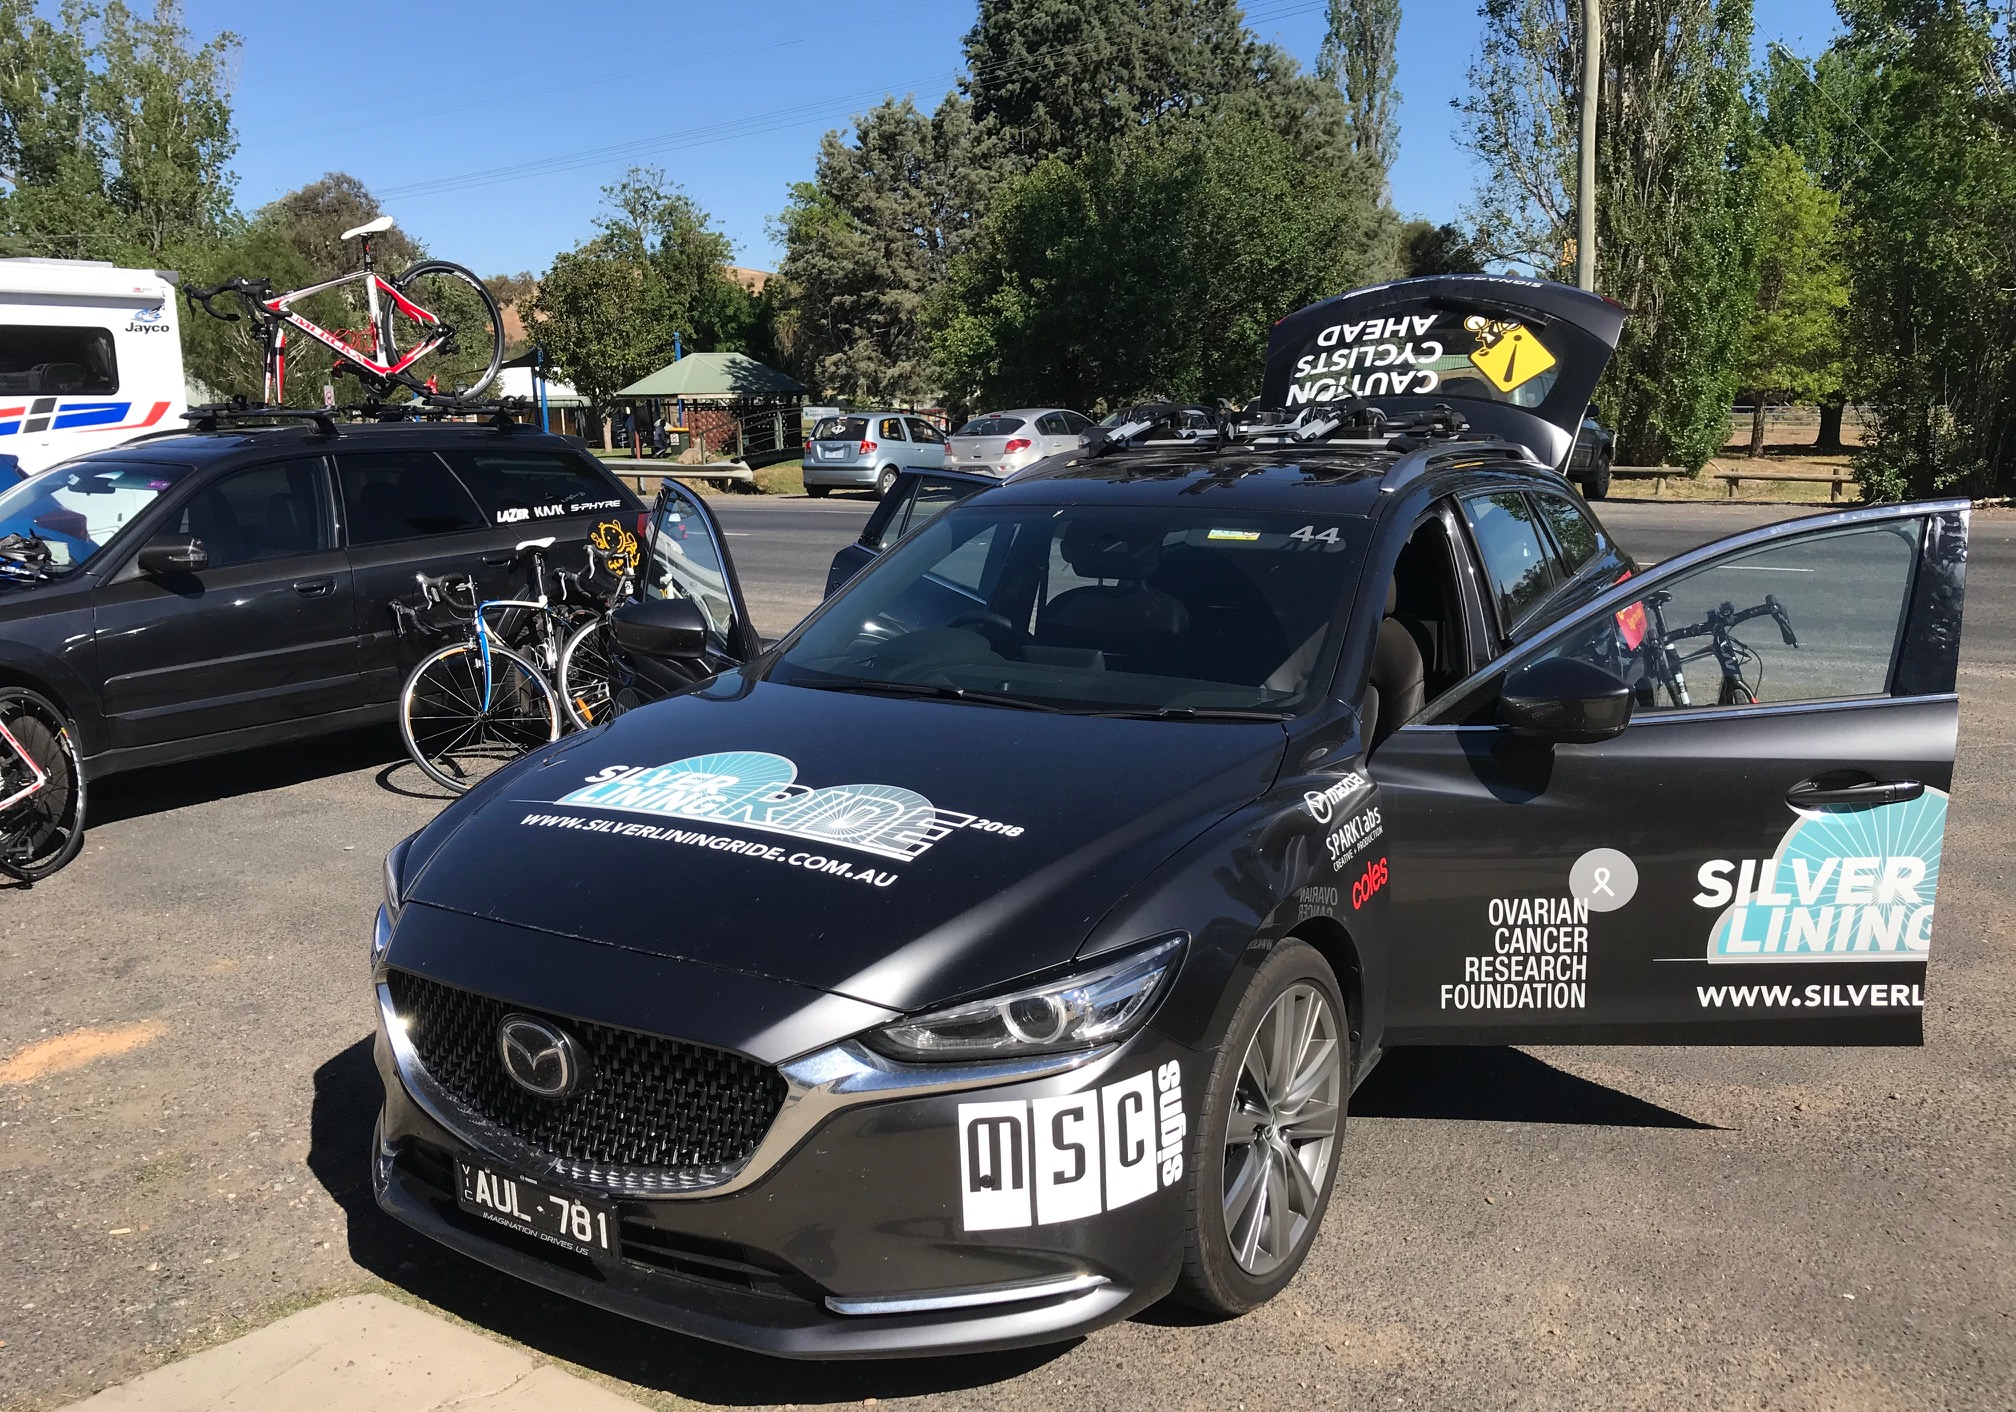 Silver Linings Charity Ride @ Jugiong @ 22 Oct - Before the stage start from Jugiong to Harden